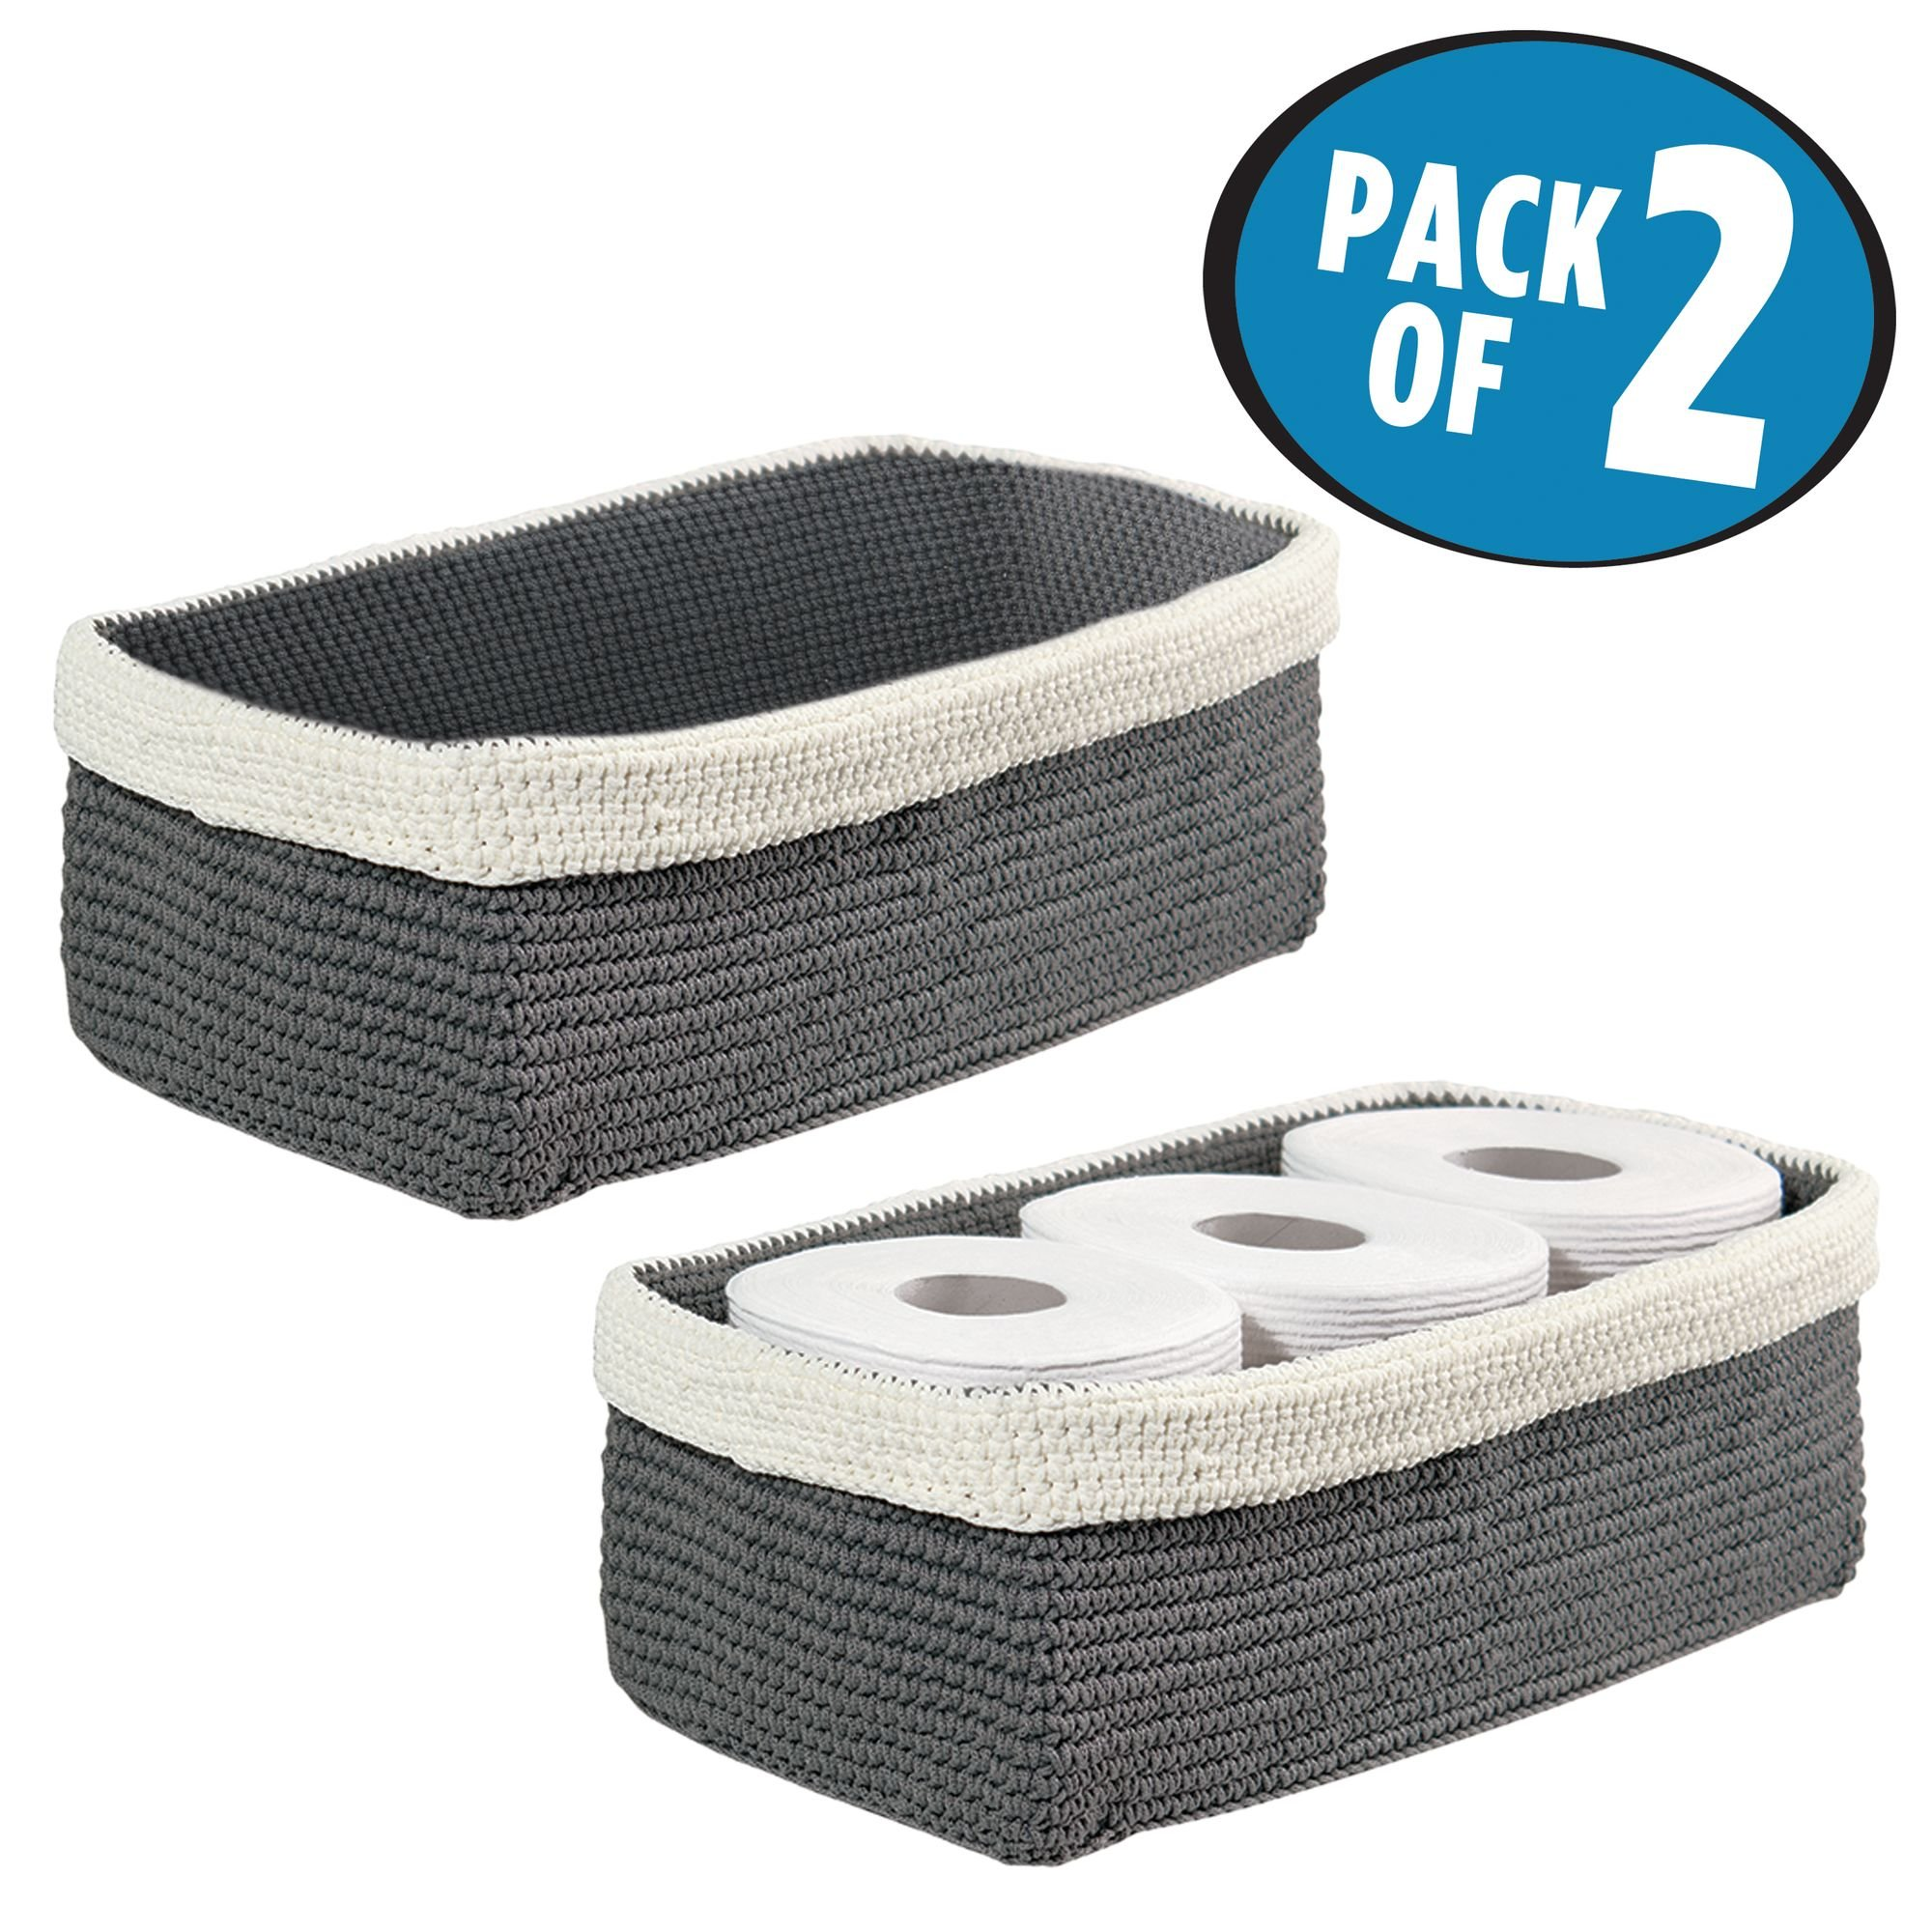 mDesign Knit Organizer Bin for Towels, Toilet Paper Rolls, Books - Pack of 2, Gray/Ivory